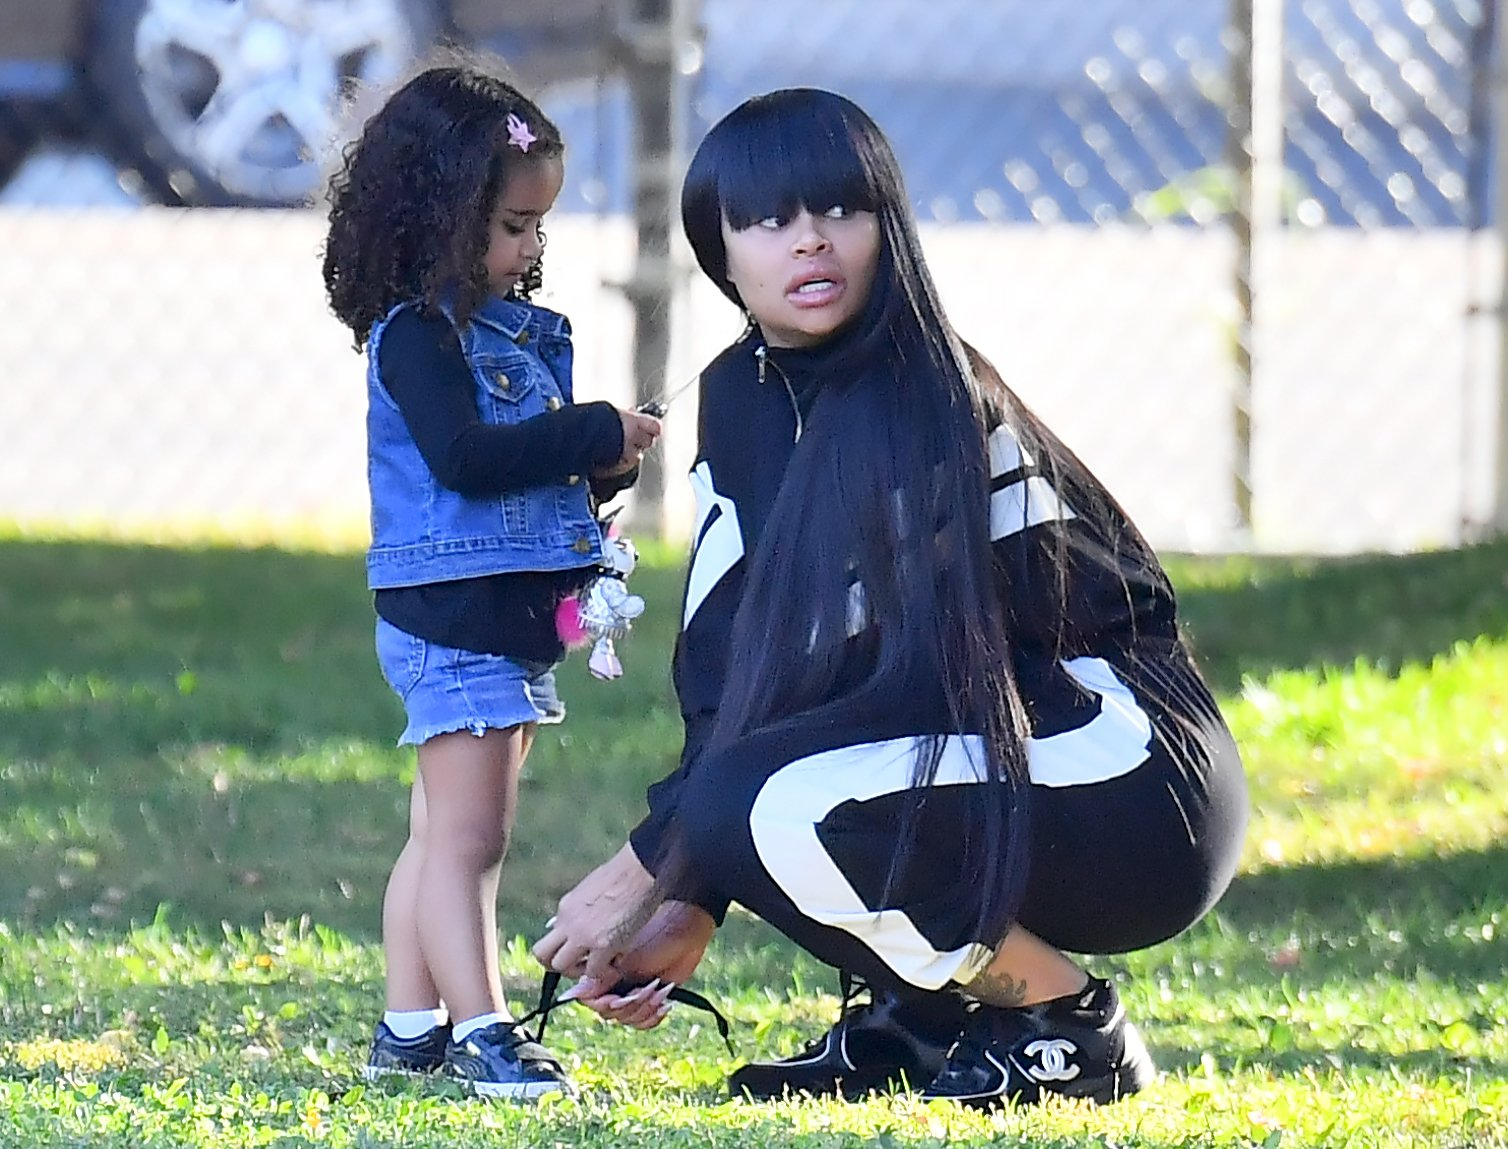 Blac Chyna Shares A Workout Video At Her Home With Dream Kardashian